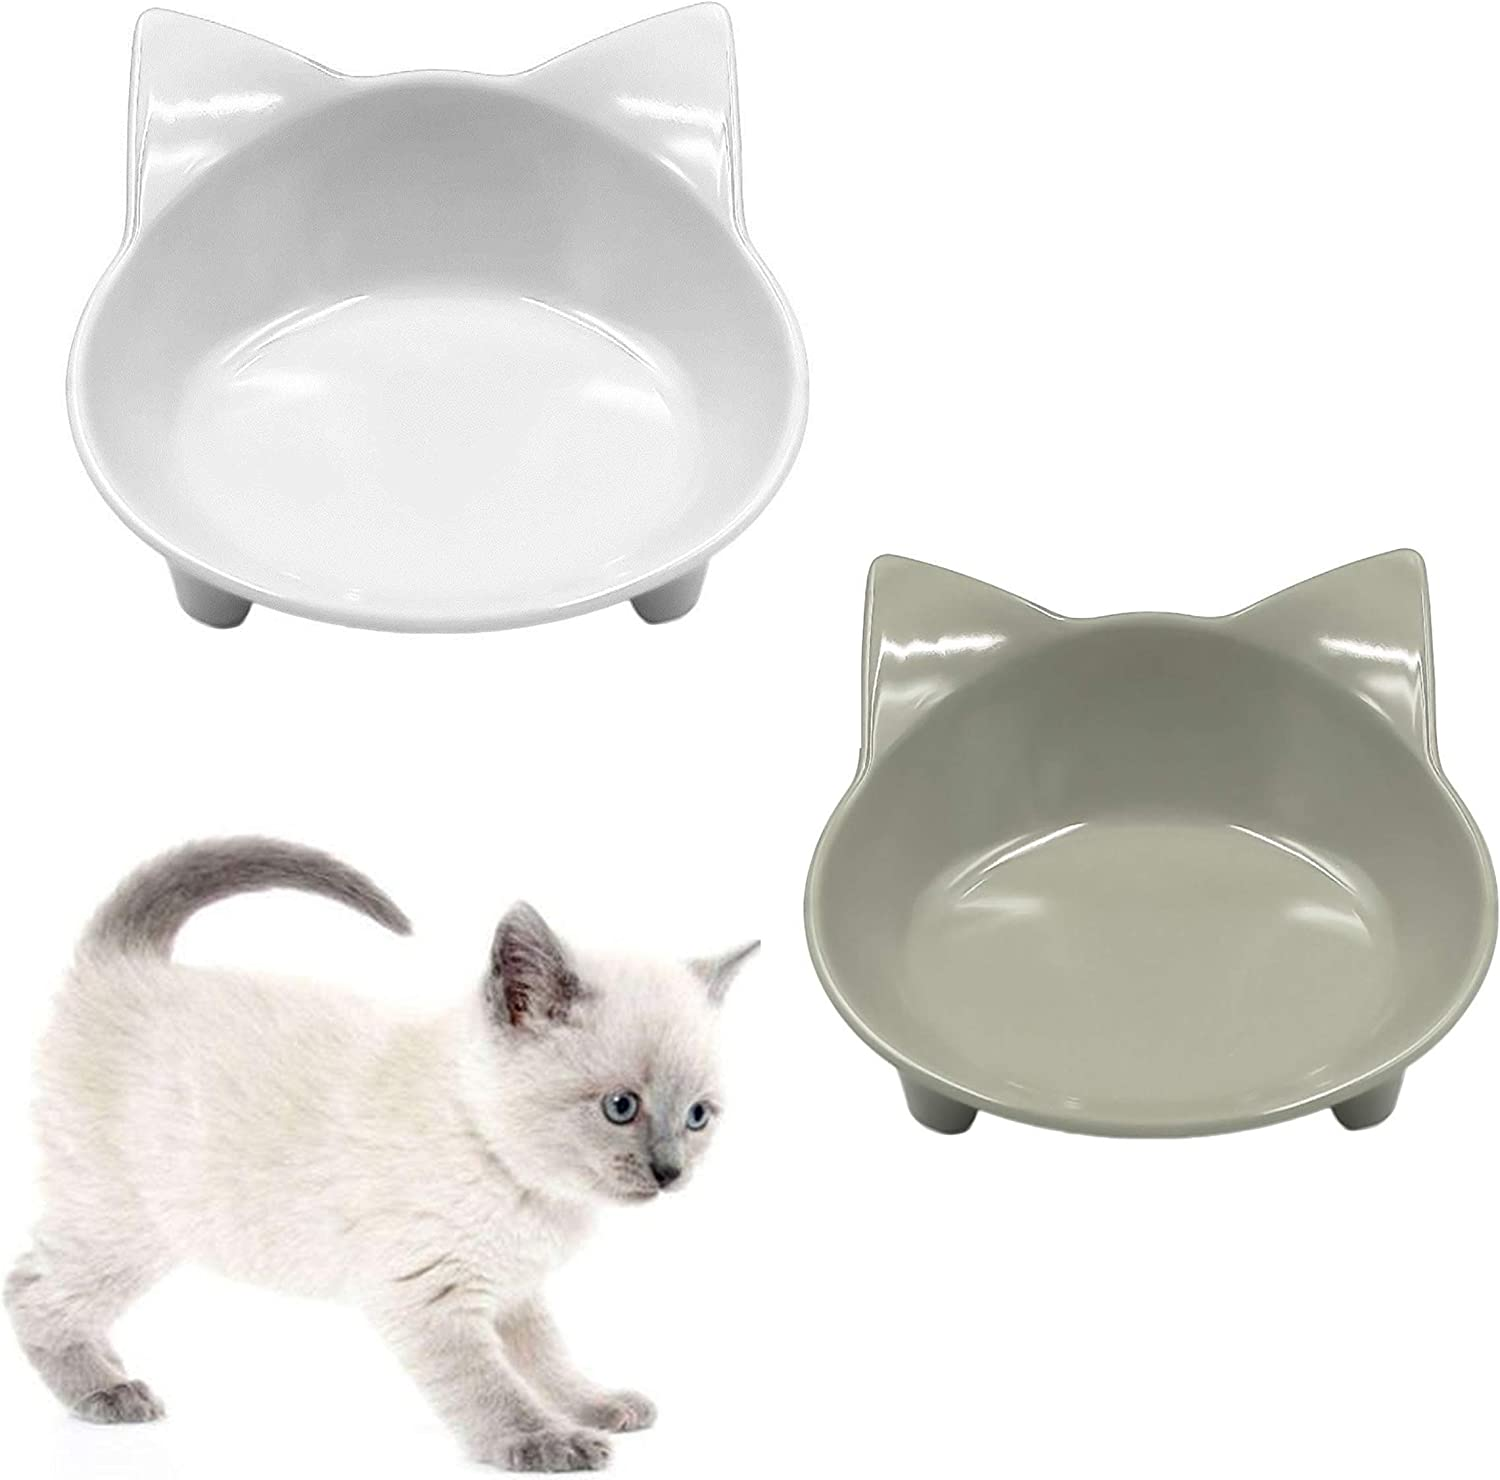 THAIN Cat Bowl Food and Water Bowls Set, Shallow and Wide Cat Dishes for Whisker Fatigue Stress Relief, Cute Design Non Slip Pet Food Water Bowls for Cats Small Dogs 2 Pack